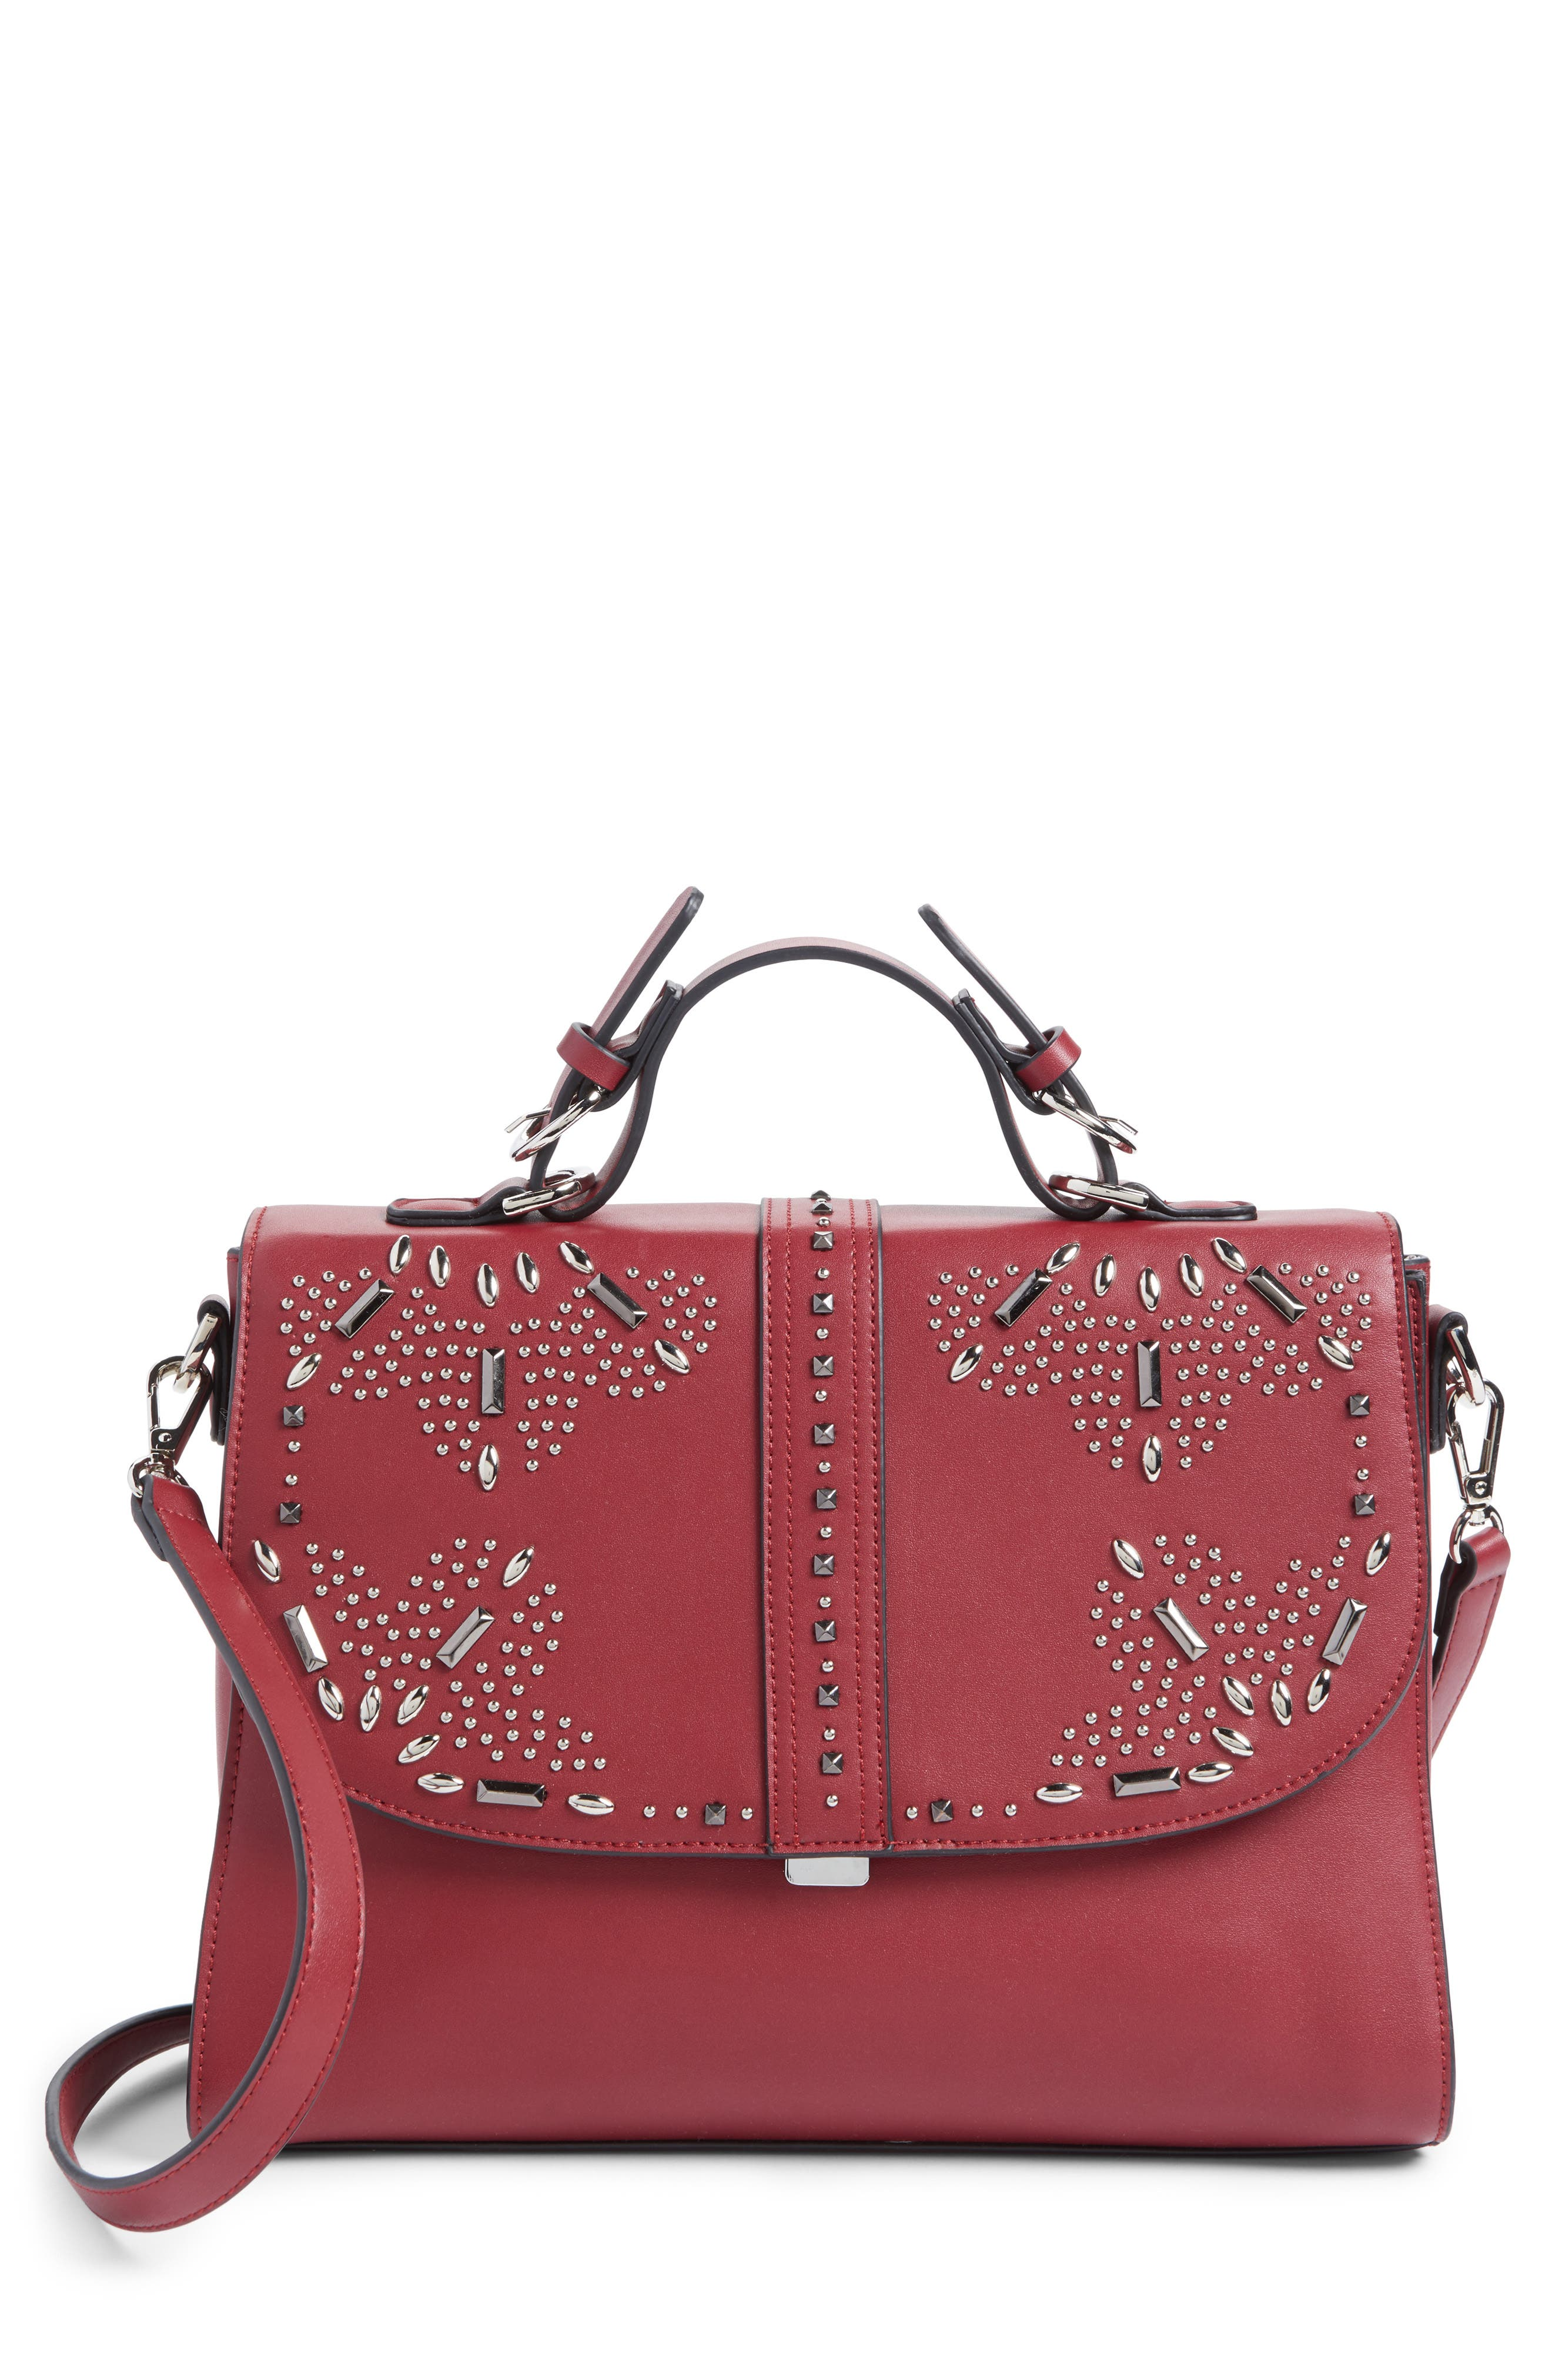 Alternate Image 1 Selected - Chelsea28 Blair Embellished Faux Leather Top Handle Satchel